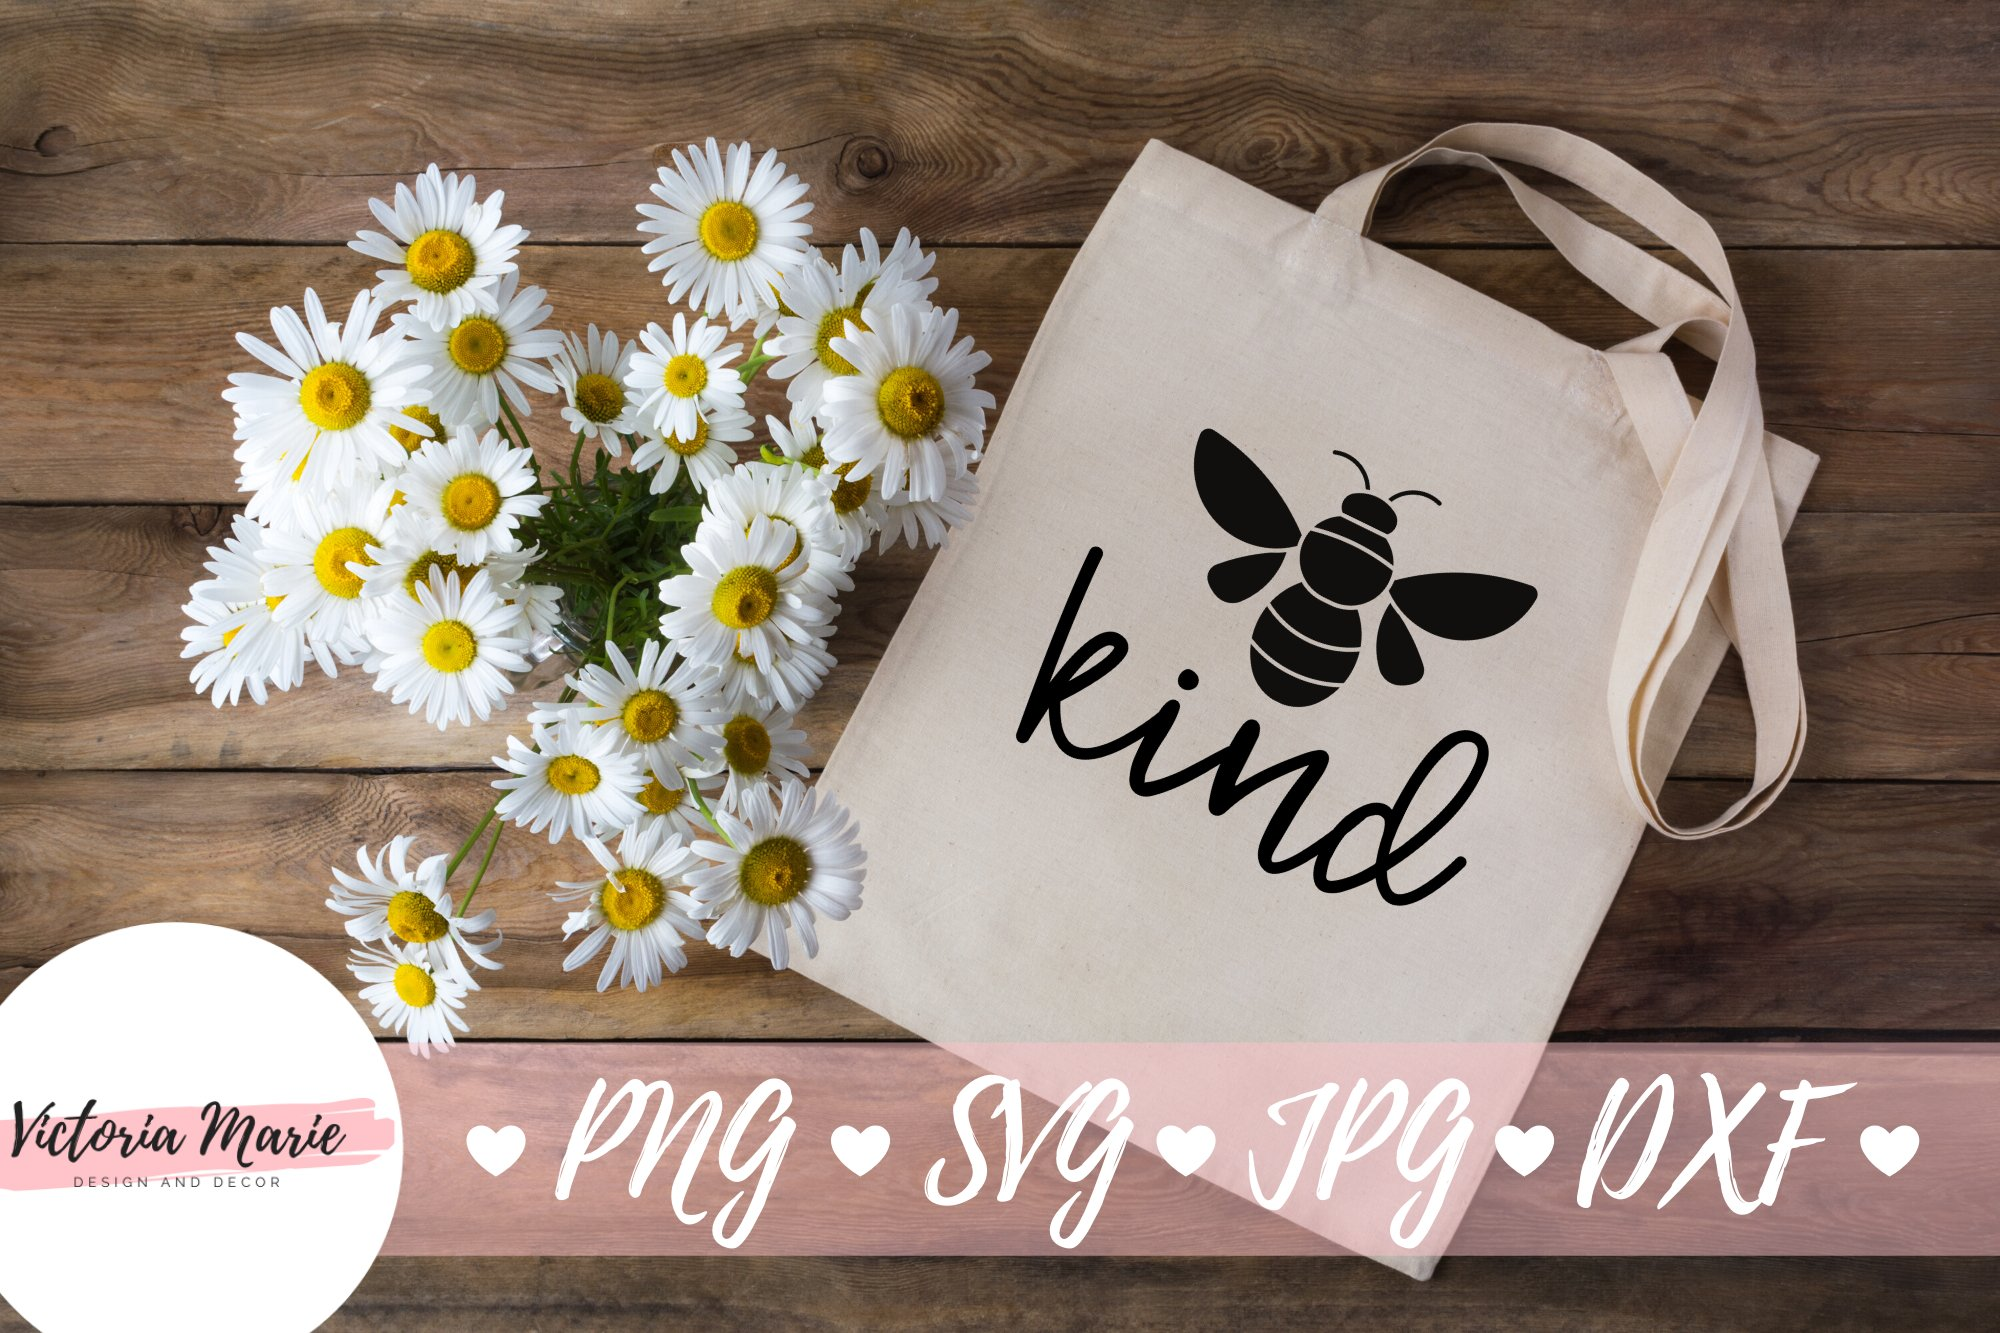 Bee Kind svg, Be Kind, Svg Designs, Bumblebee Cut Files example image 3